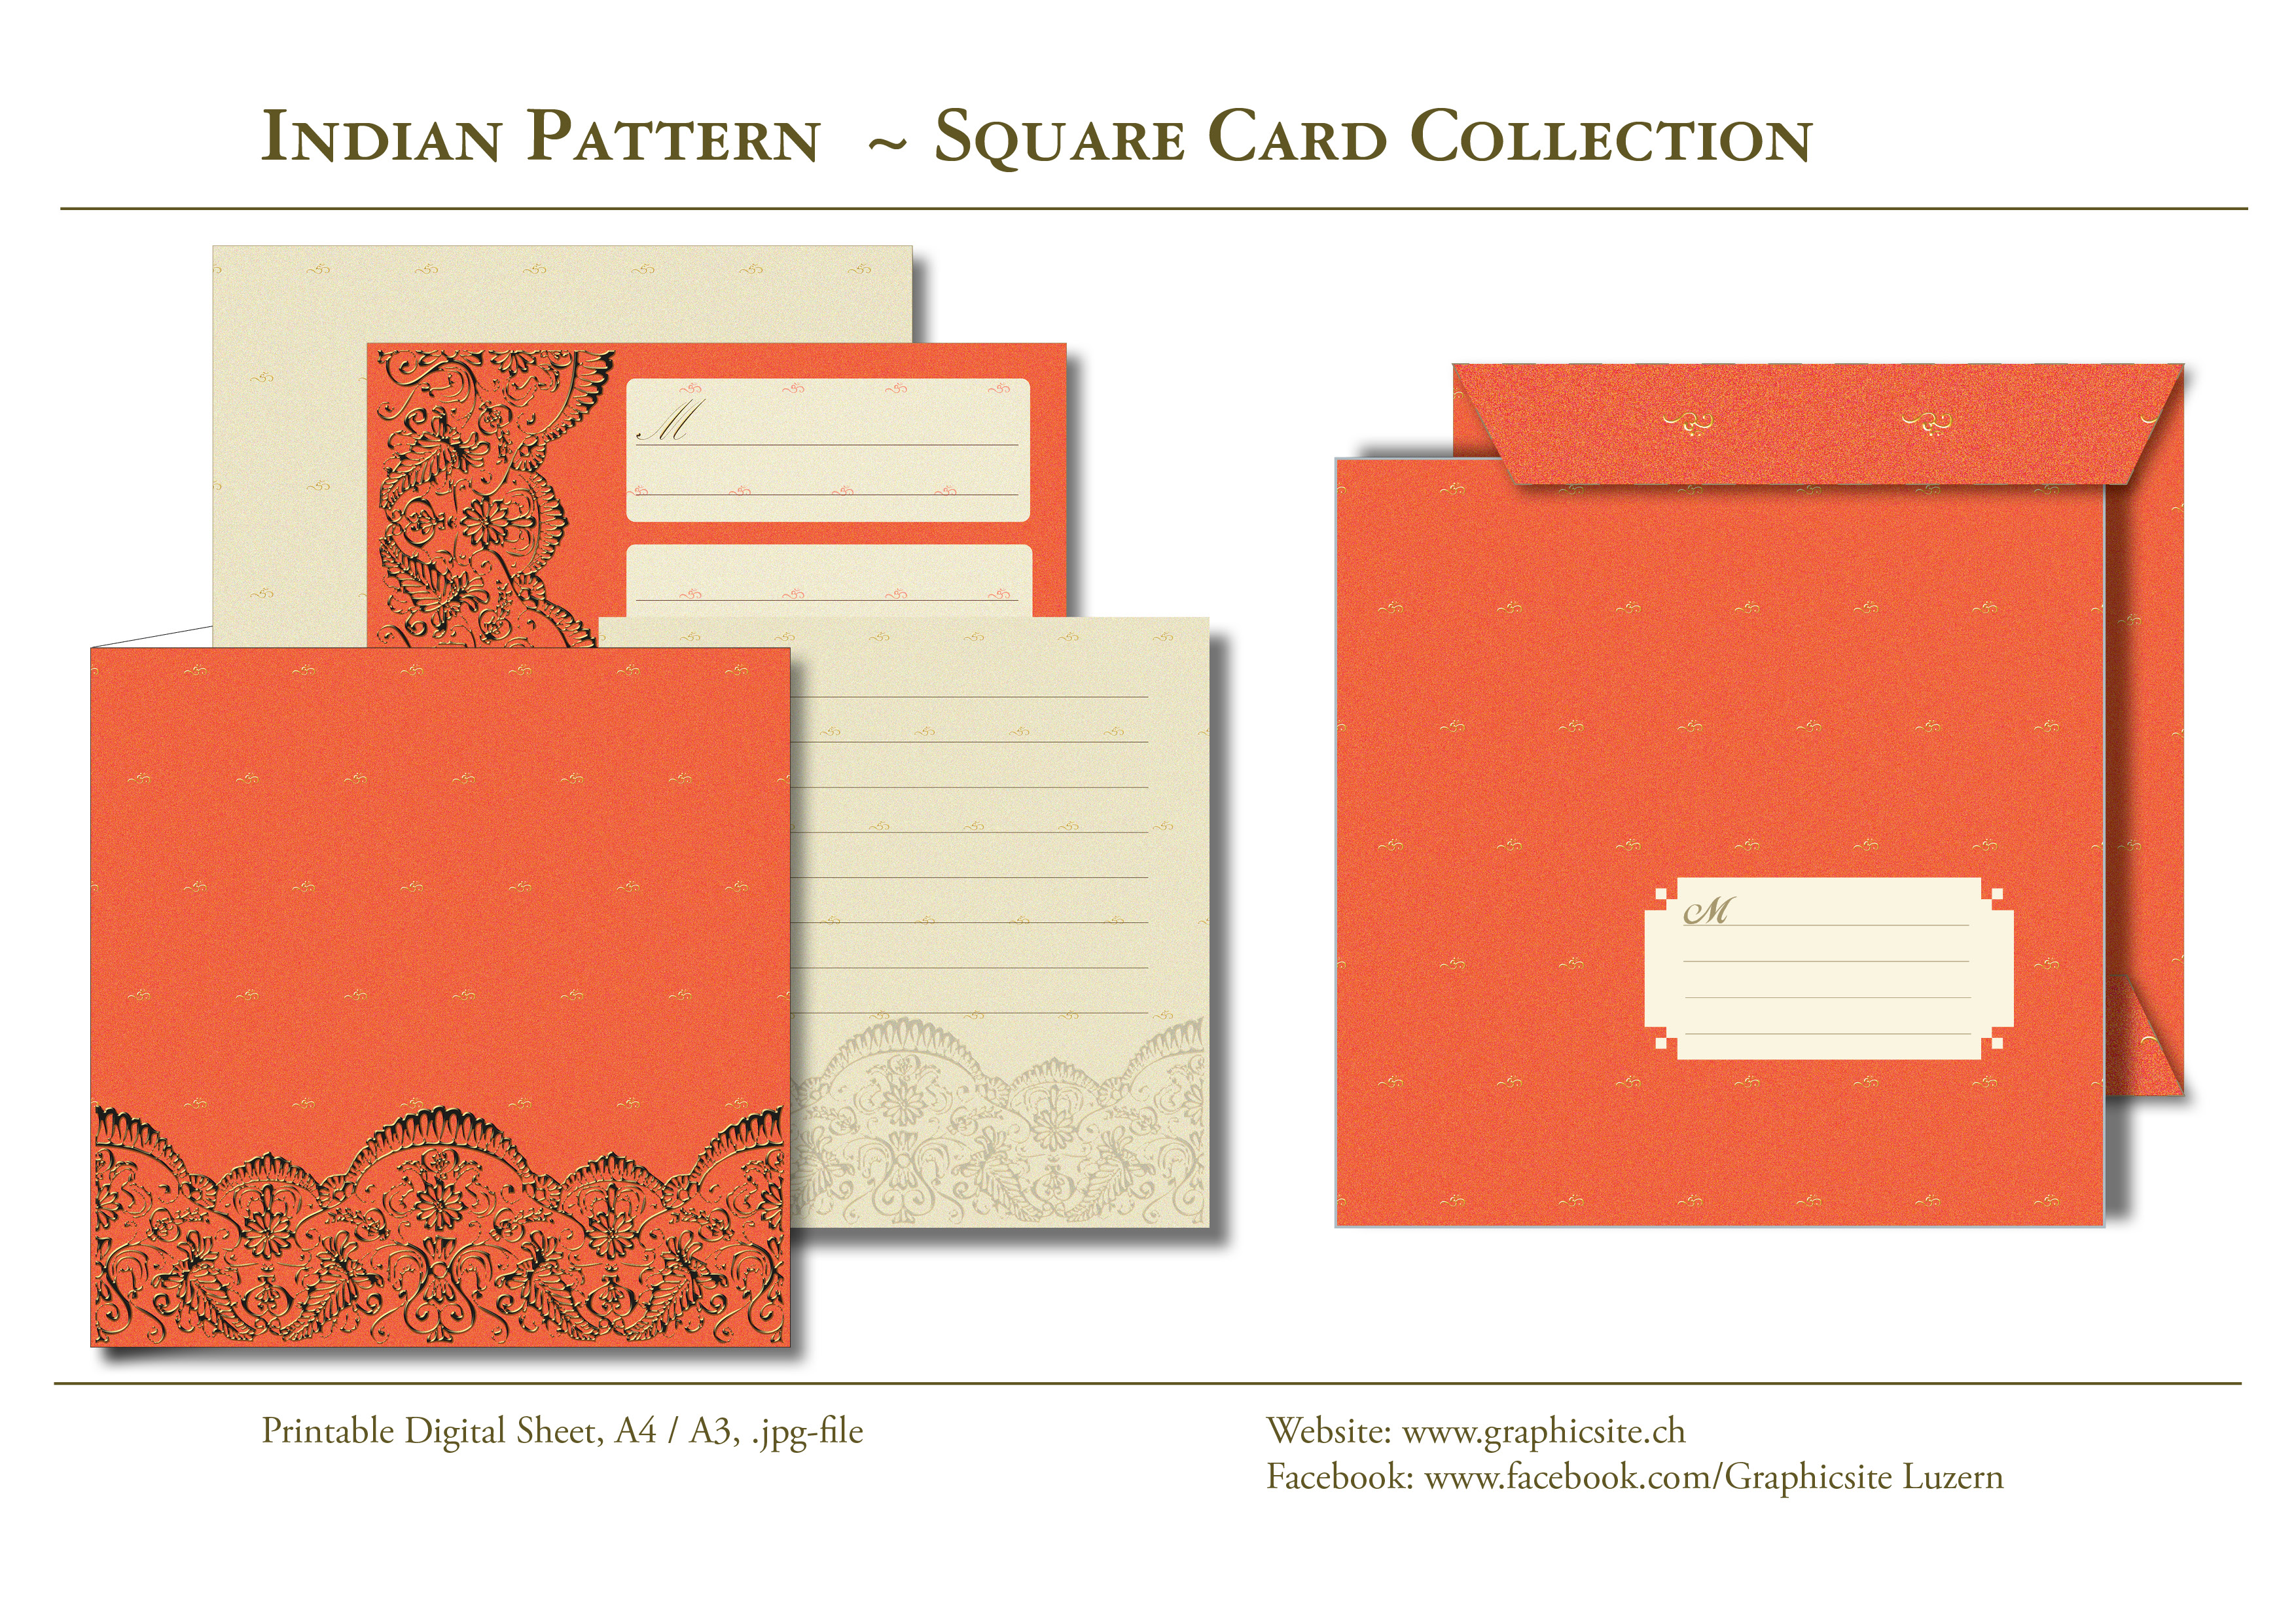 Printable Digital Sheets, Online, download, cards, card collection, square cards, Indian Pattern, Graphic Design, Luzern,